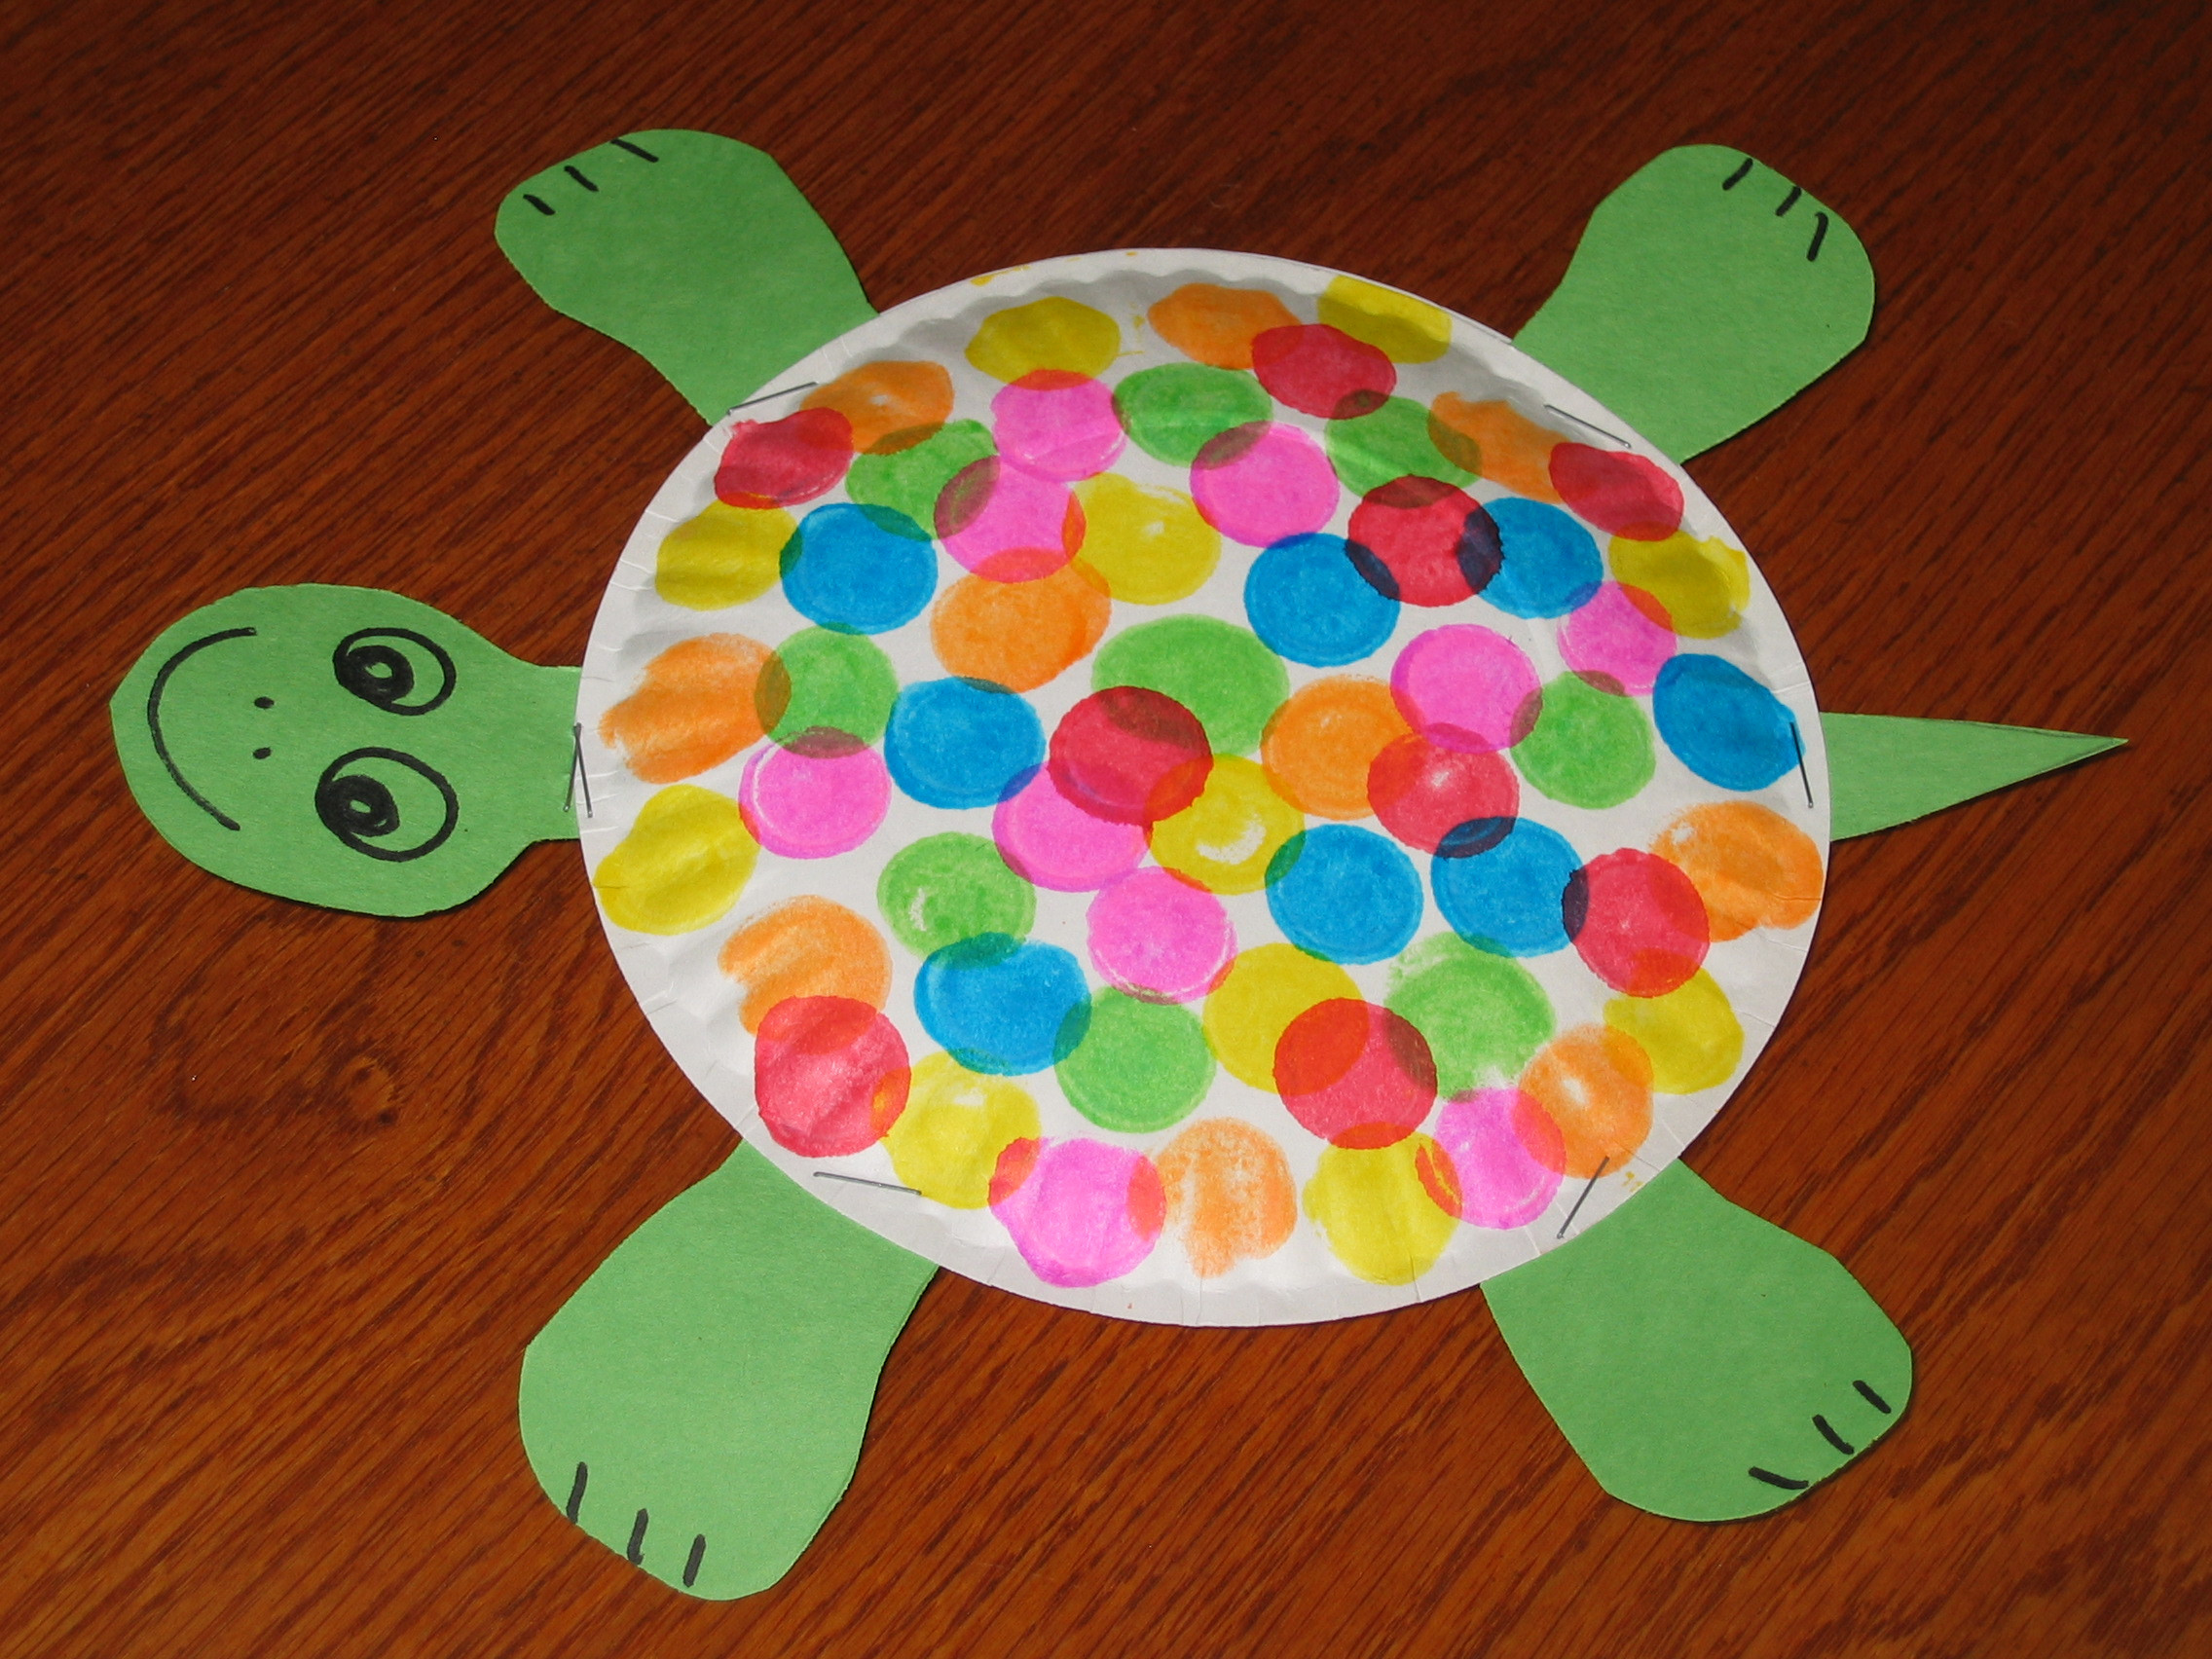 Best ideas about Arts And Crafts For Preschoolers . Save or Pin 40 Fun and Fantastic Paper Plate Crafts Now.